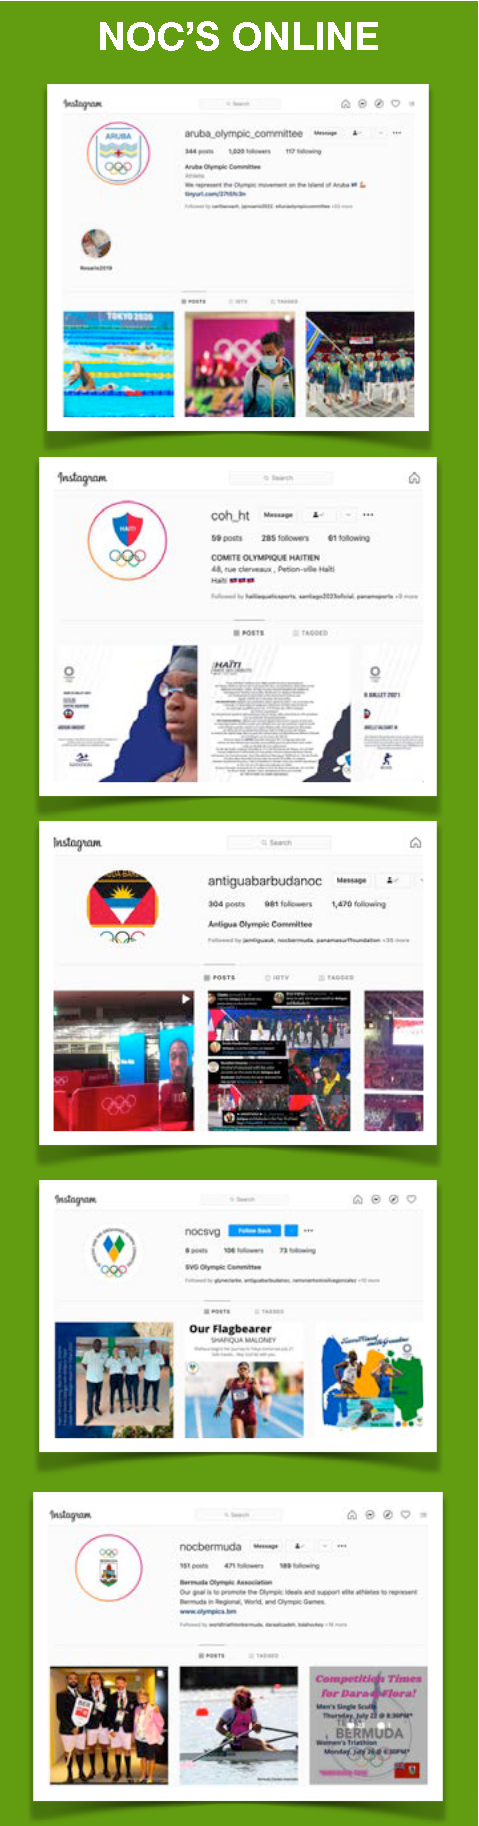 page 3 side bar